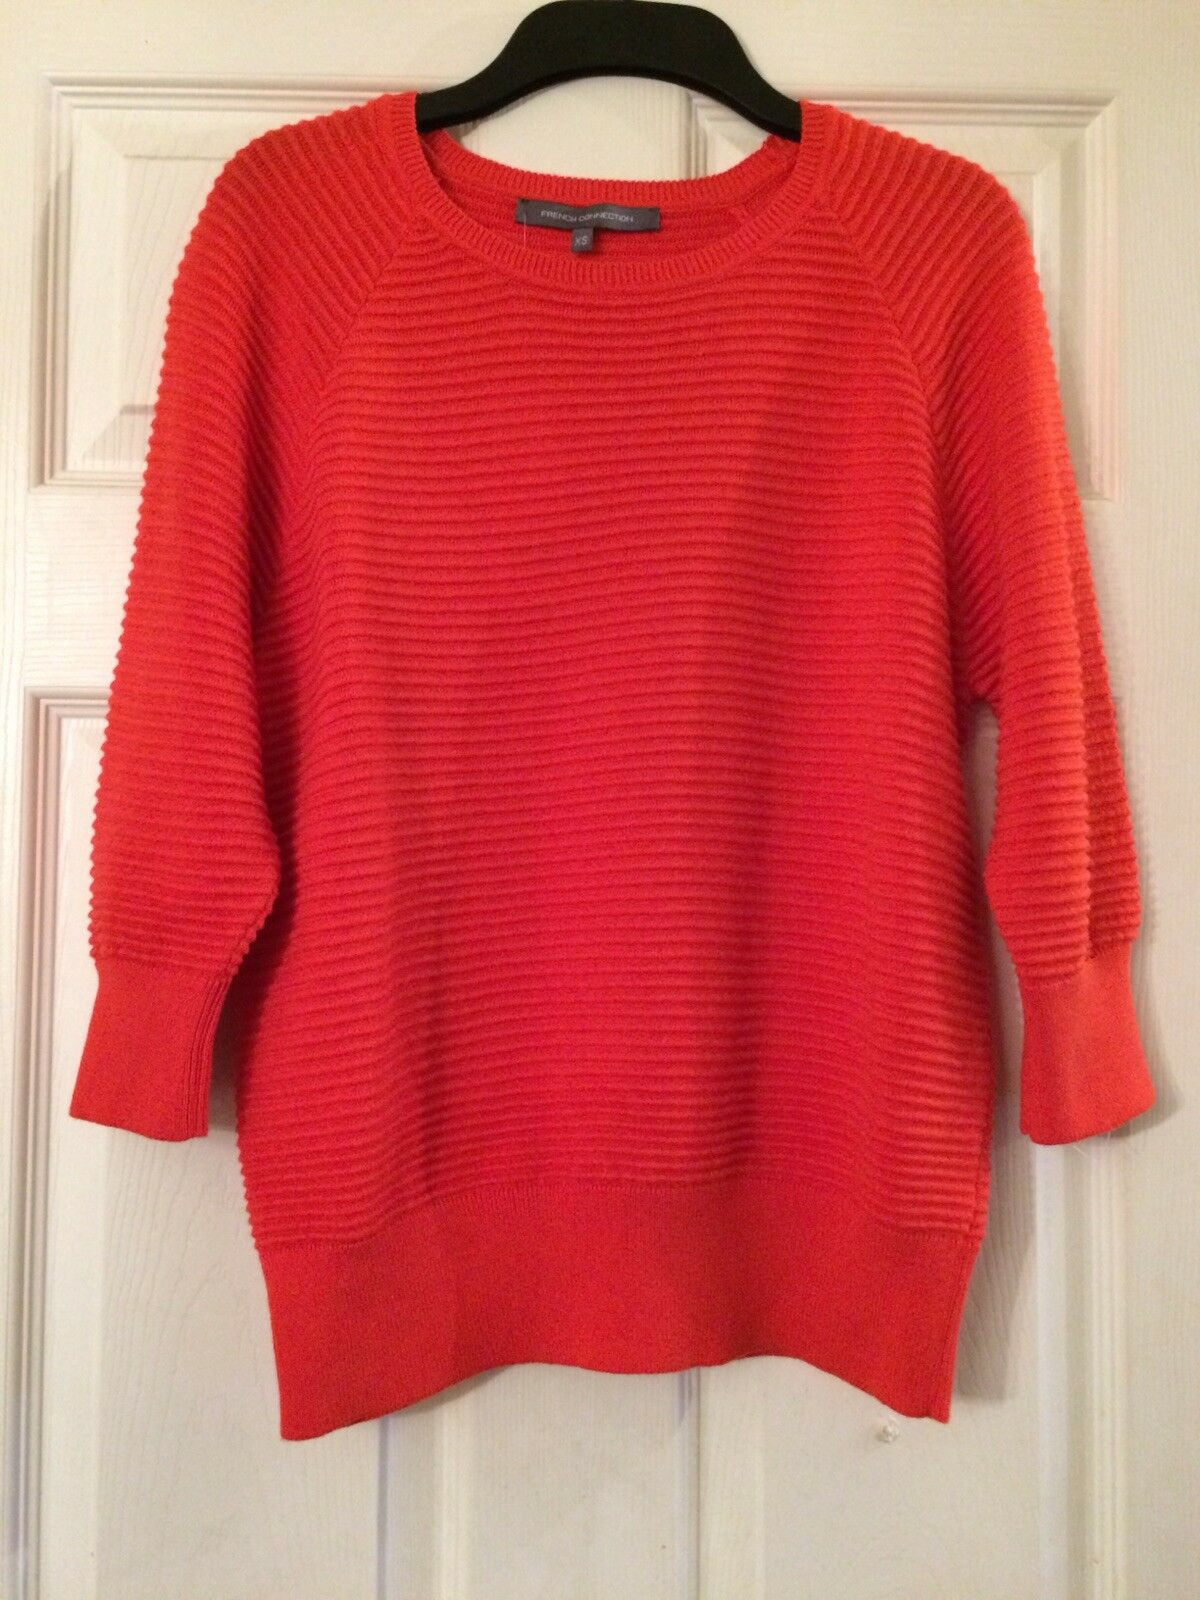 BNWT Ladies French Connection Jumper, Size XS